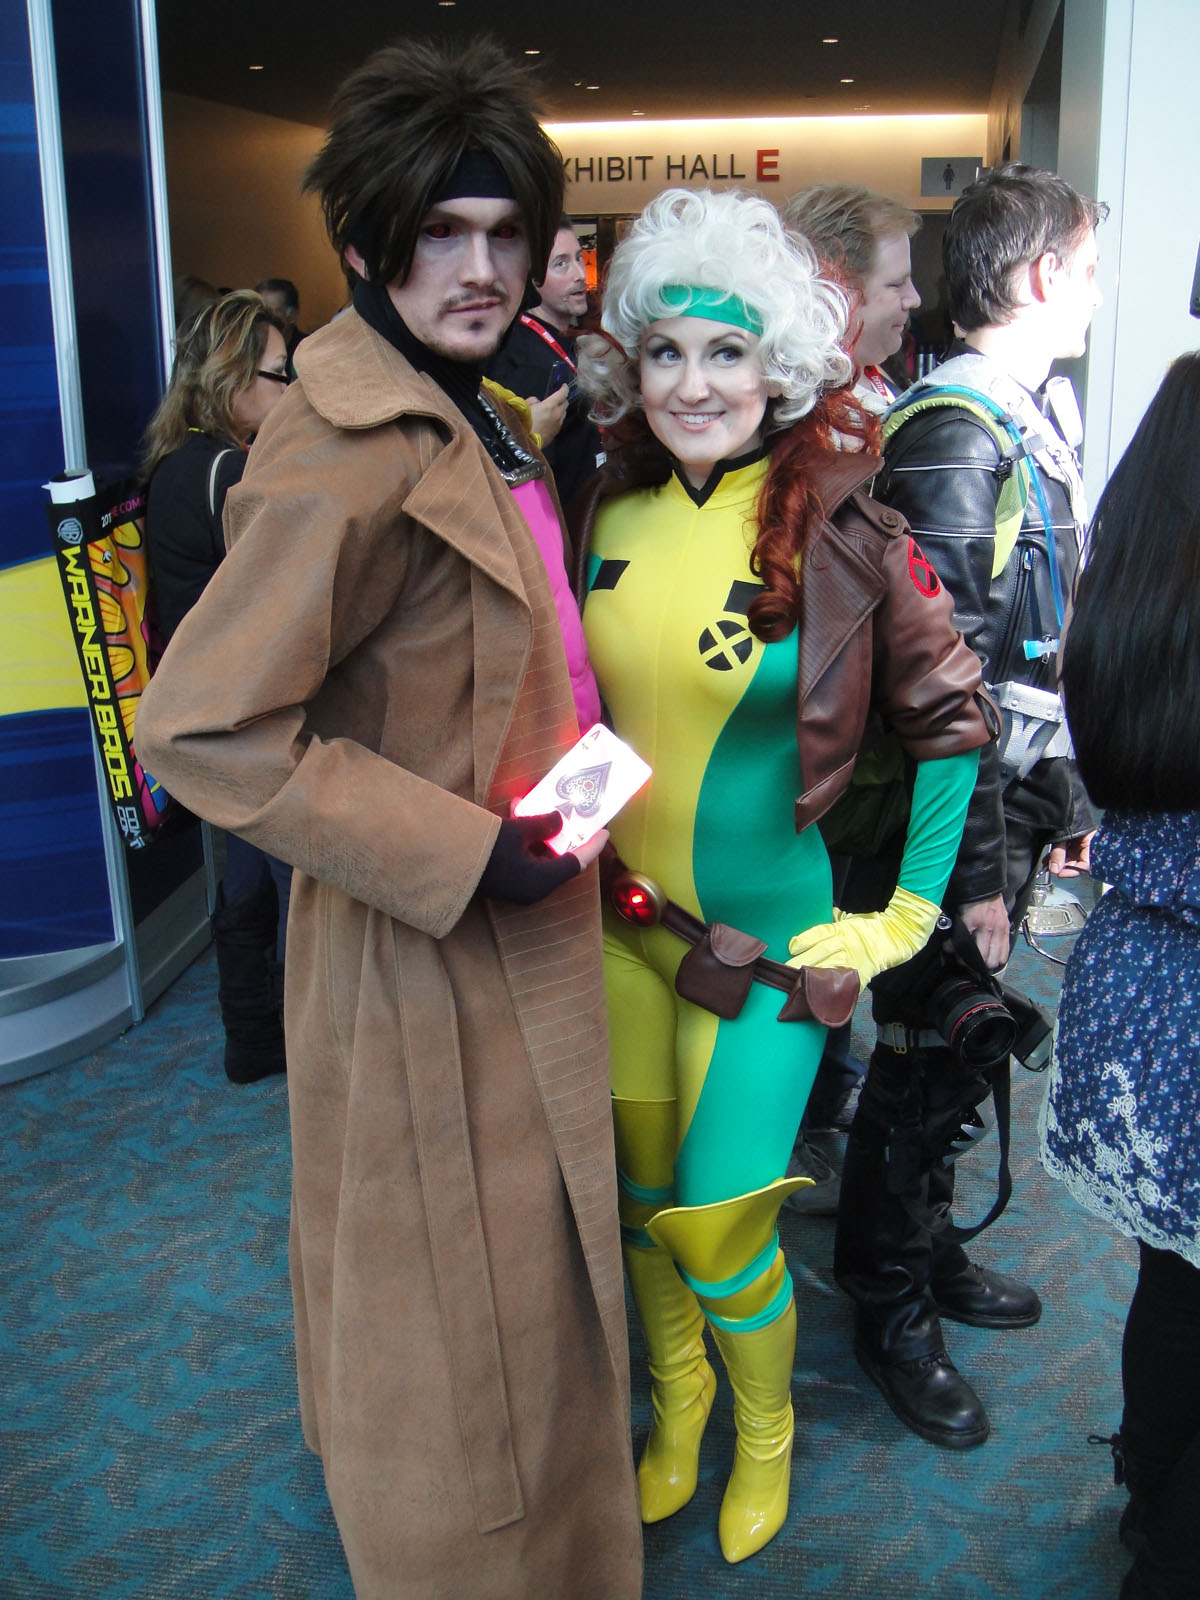 FileSan Diego Comic-Con 2011 - Cosplays of Gambit and Rogue.jpg  sc 1 st  Wikimedia Commons & File:San Diego Comic-Con 2011 - Cosplays of Gambit and Rogue.jpg ...